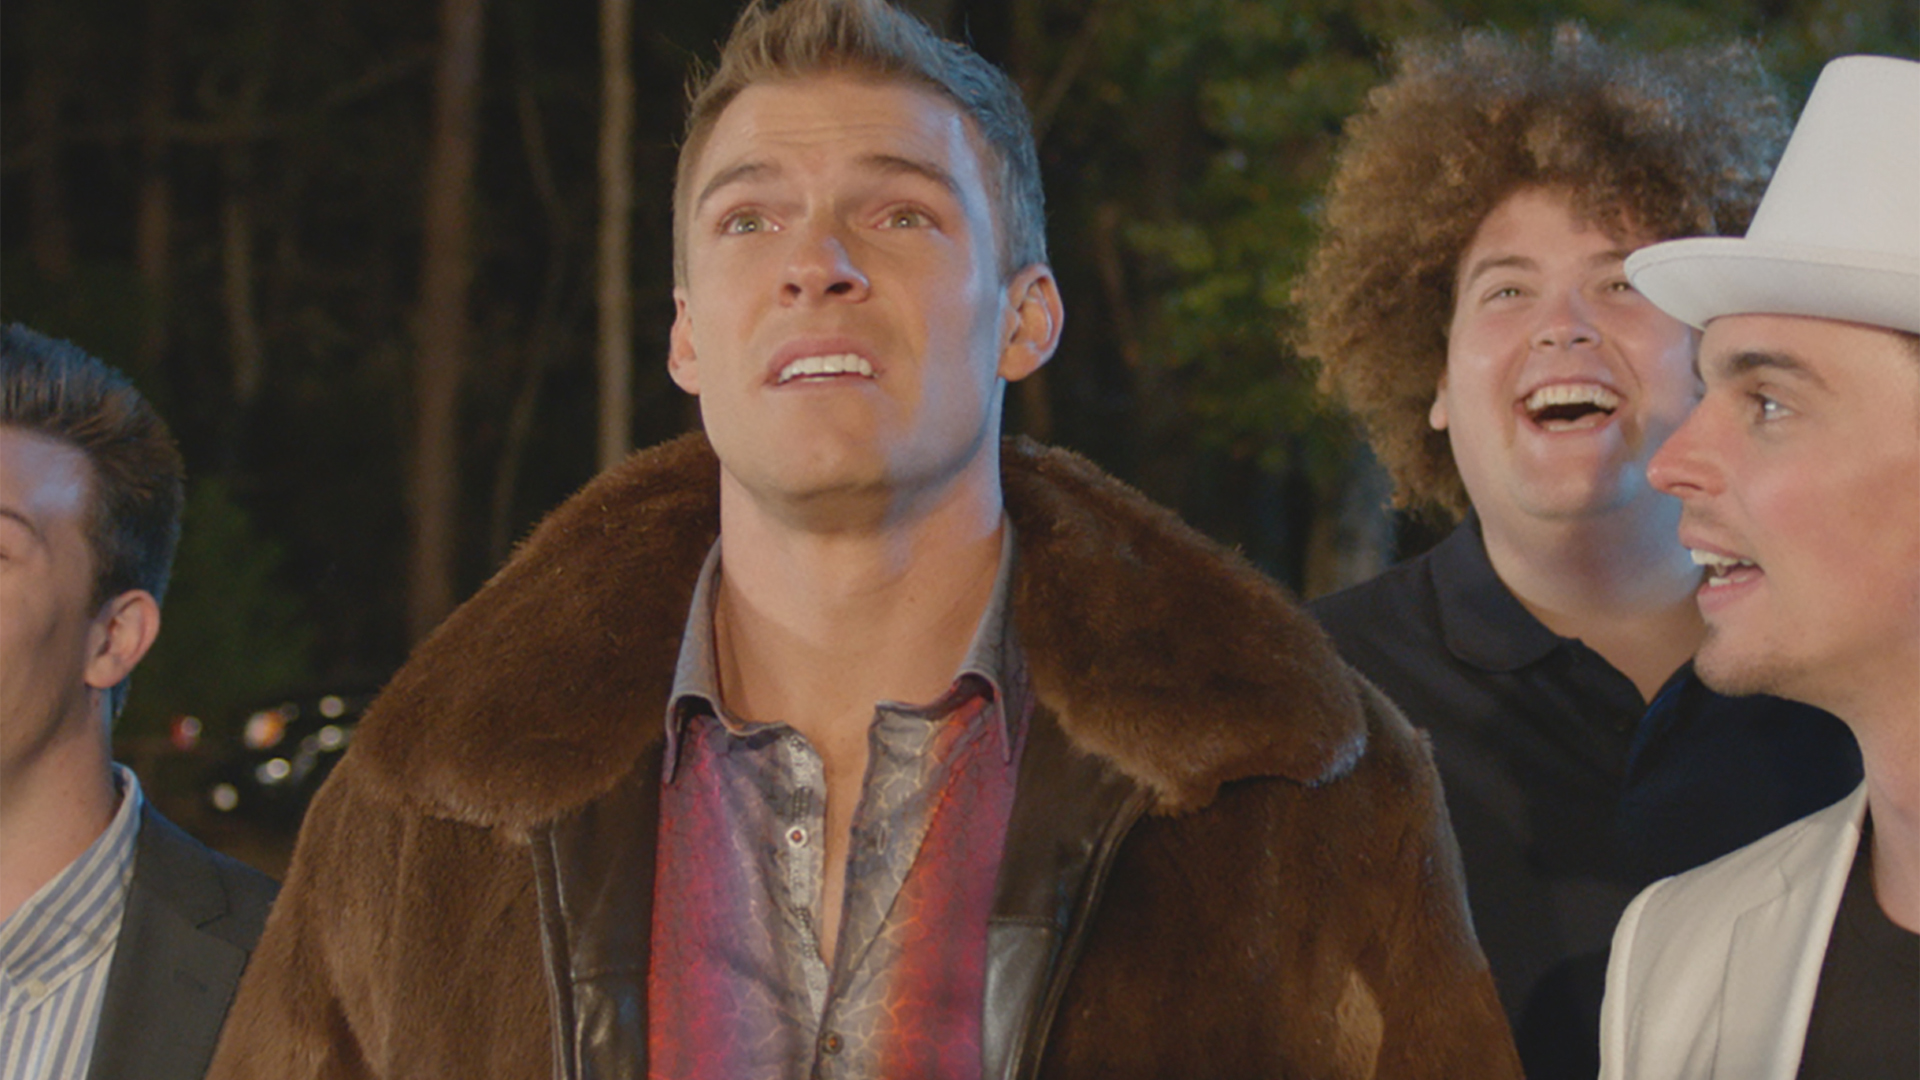 Blue mountain state movie release date in Sydney